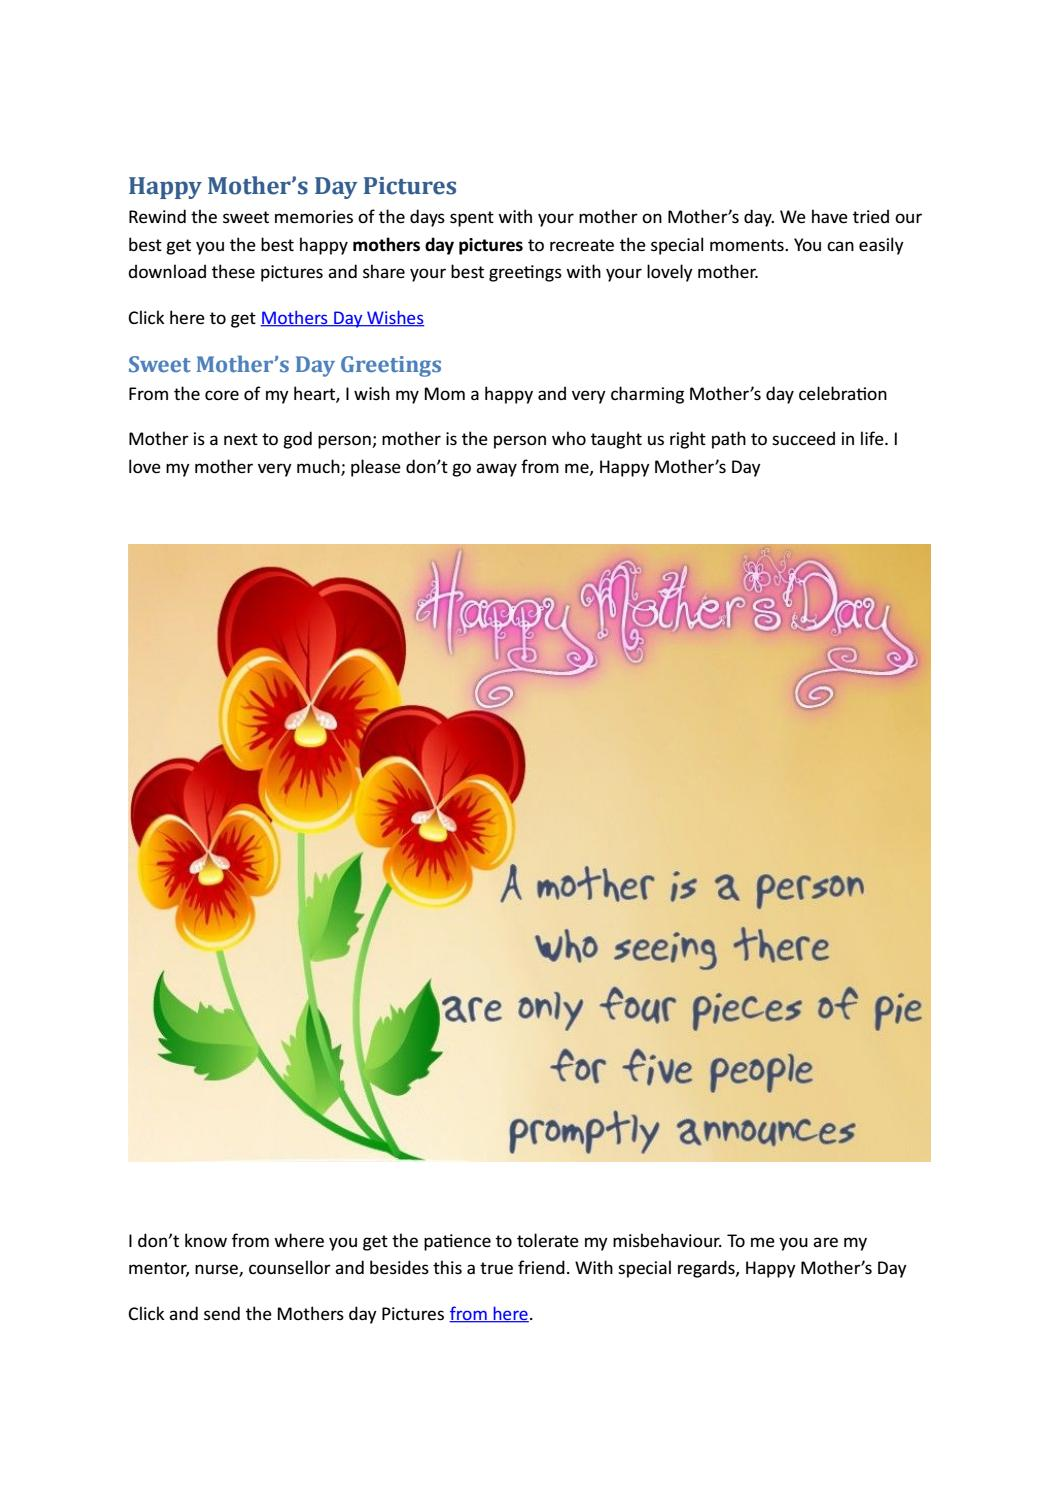 Happy Mothers Day Images And Pictures By Angela Rexario Issuu